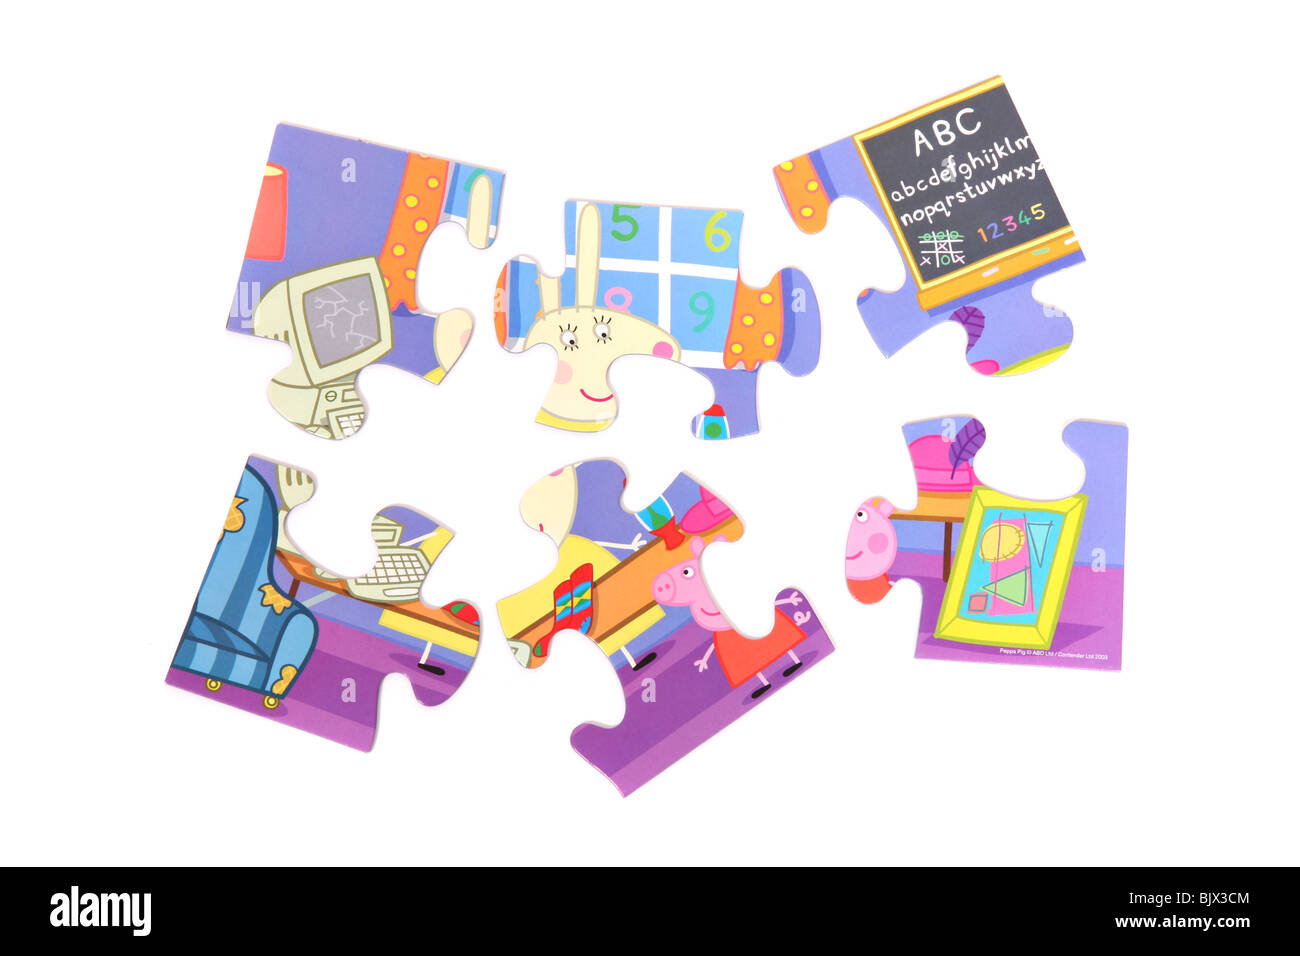 A Pepper Pig jigsaw puzzle, taken against a white background. - Stock Image